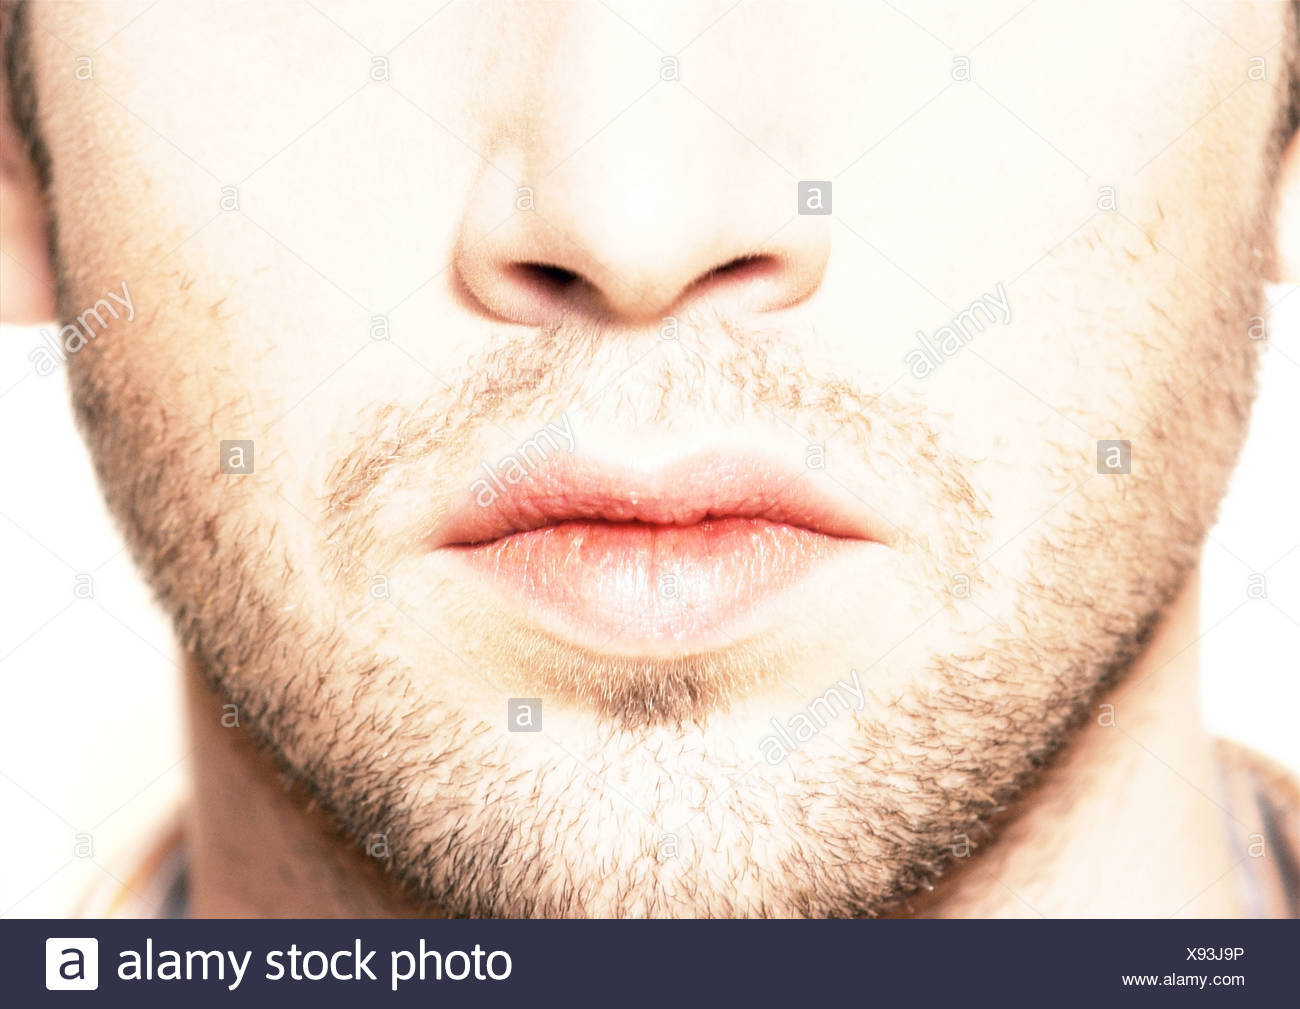 Lower part of man's face, close-up - Stock Image